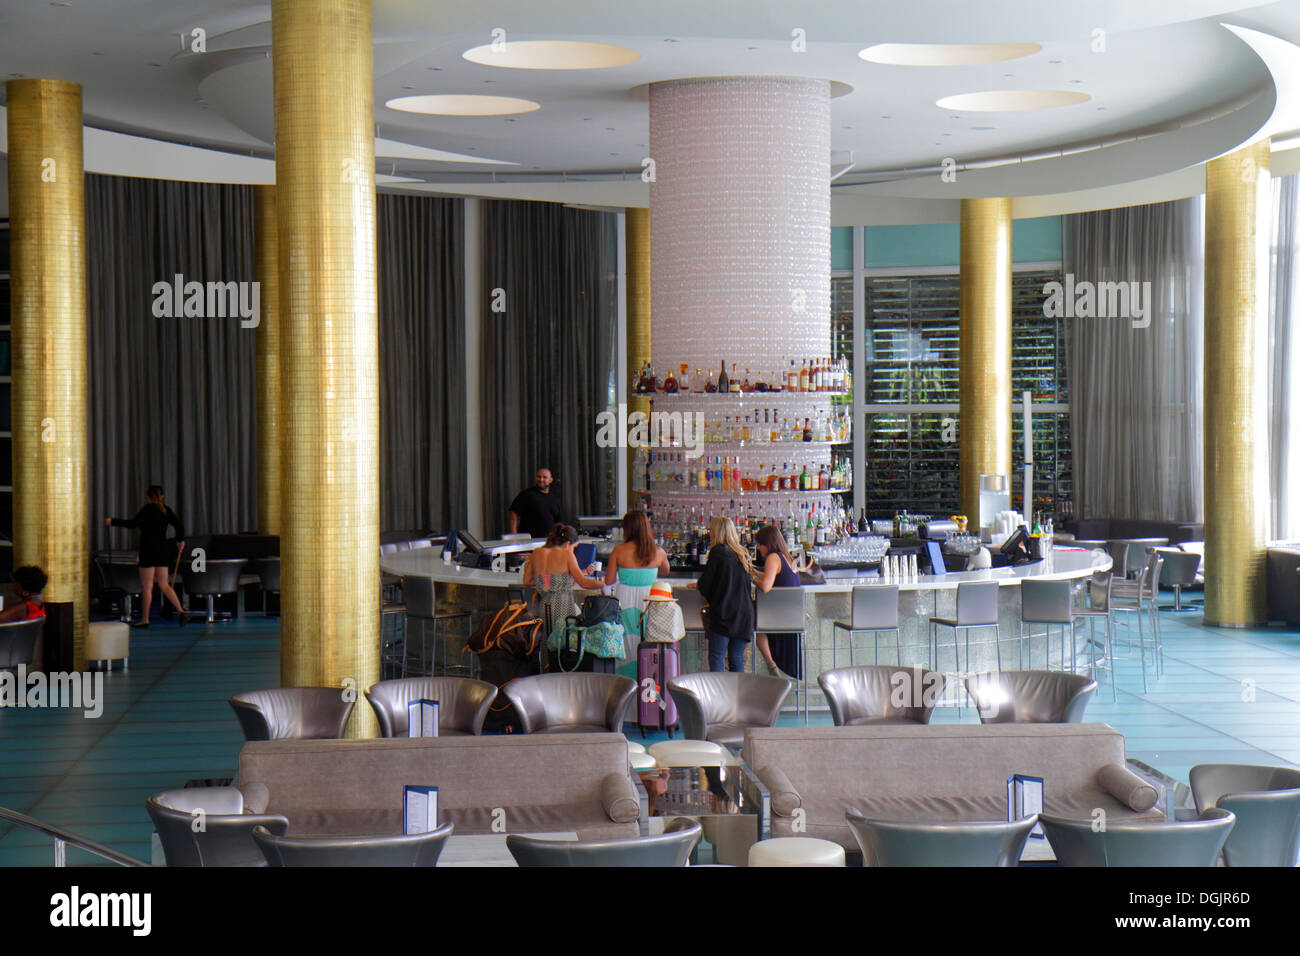 Miami Beach Florida Collins Avenue Fontainebleau Miami Beach Hotel Inside  Interior Lobby Bar   Stock Image